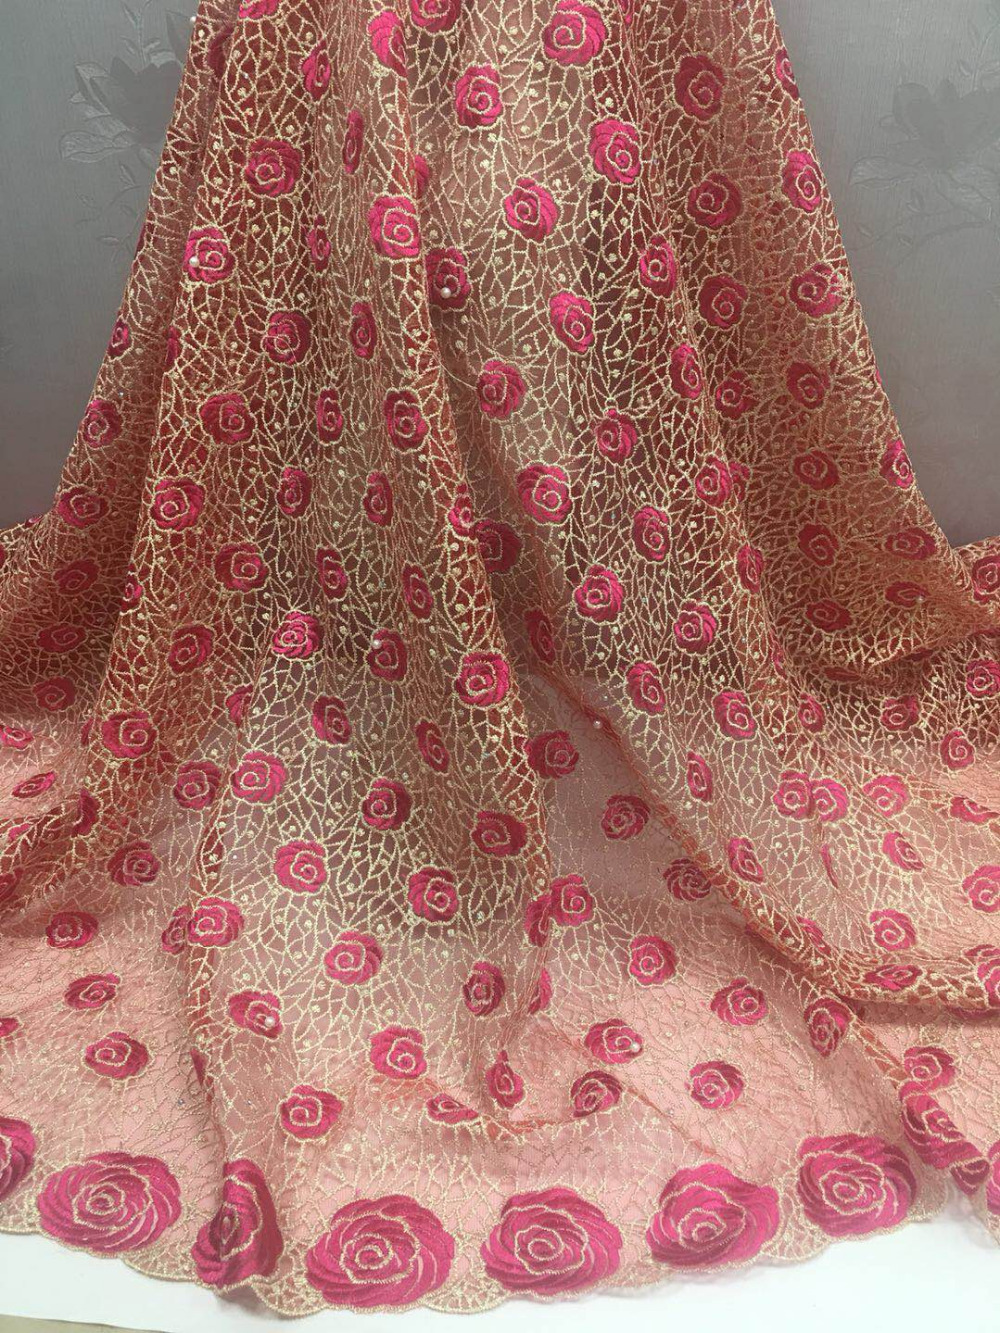 Aliexpress.com : Buy Light pink french lace fabric with